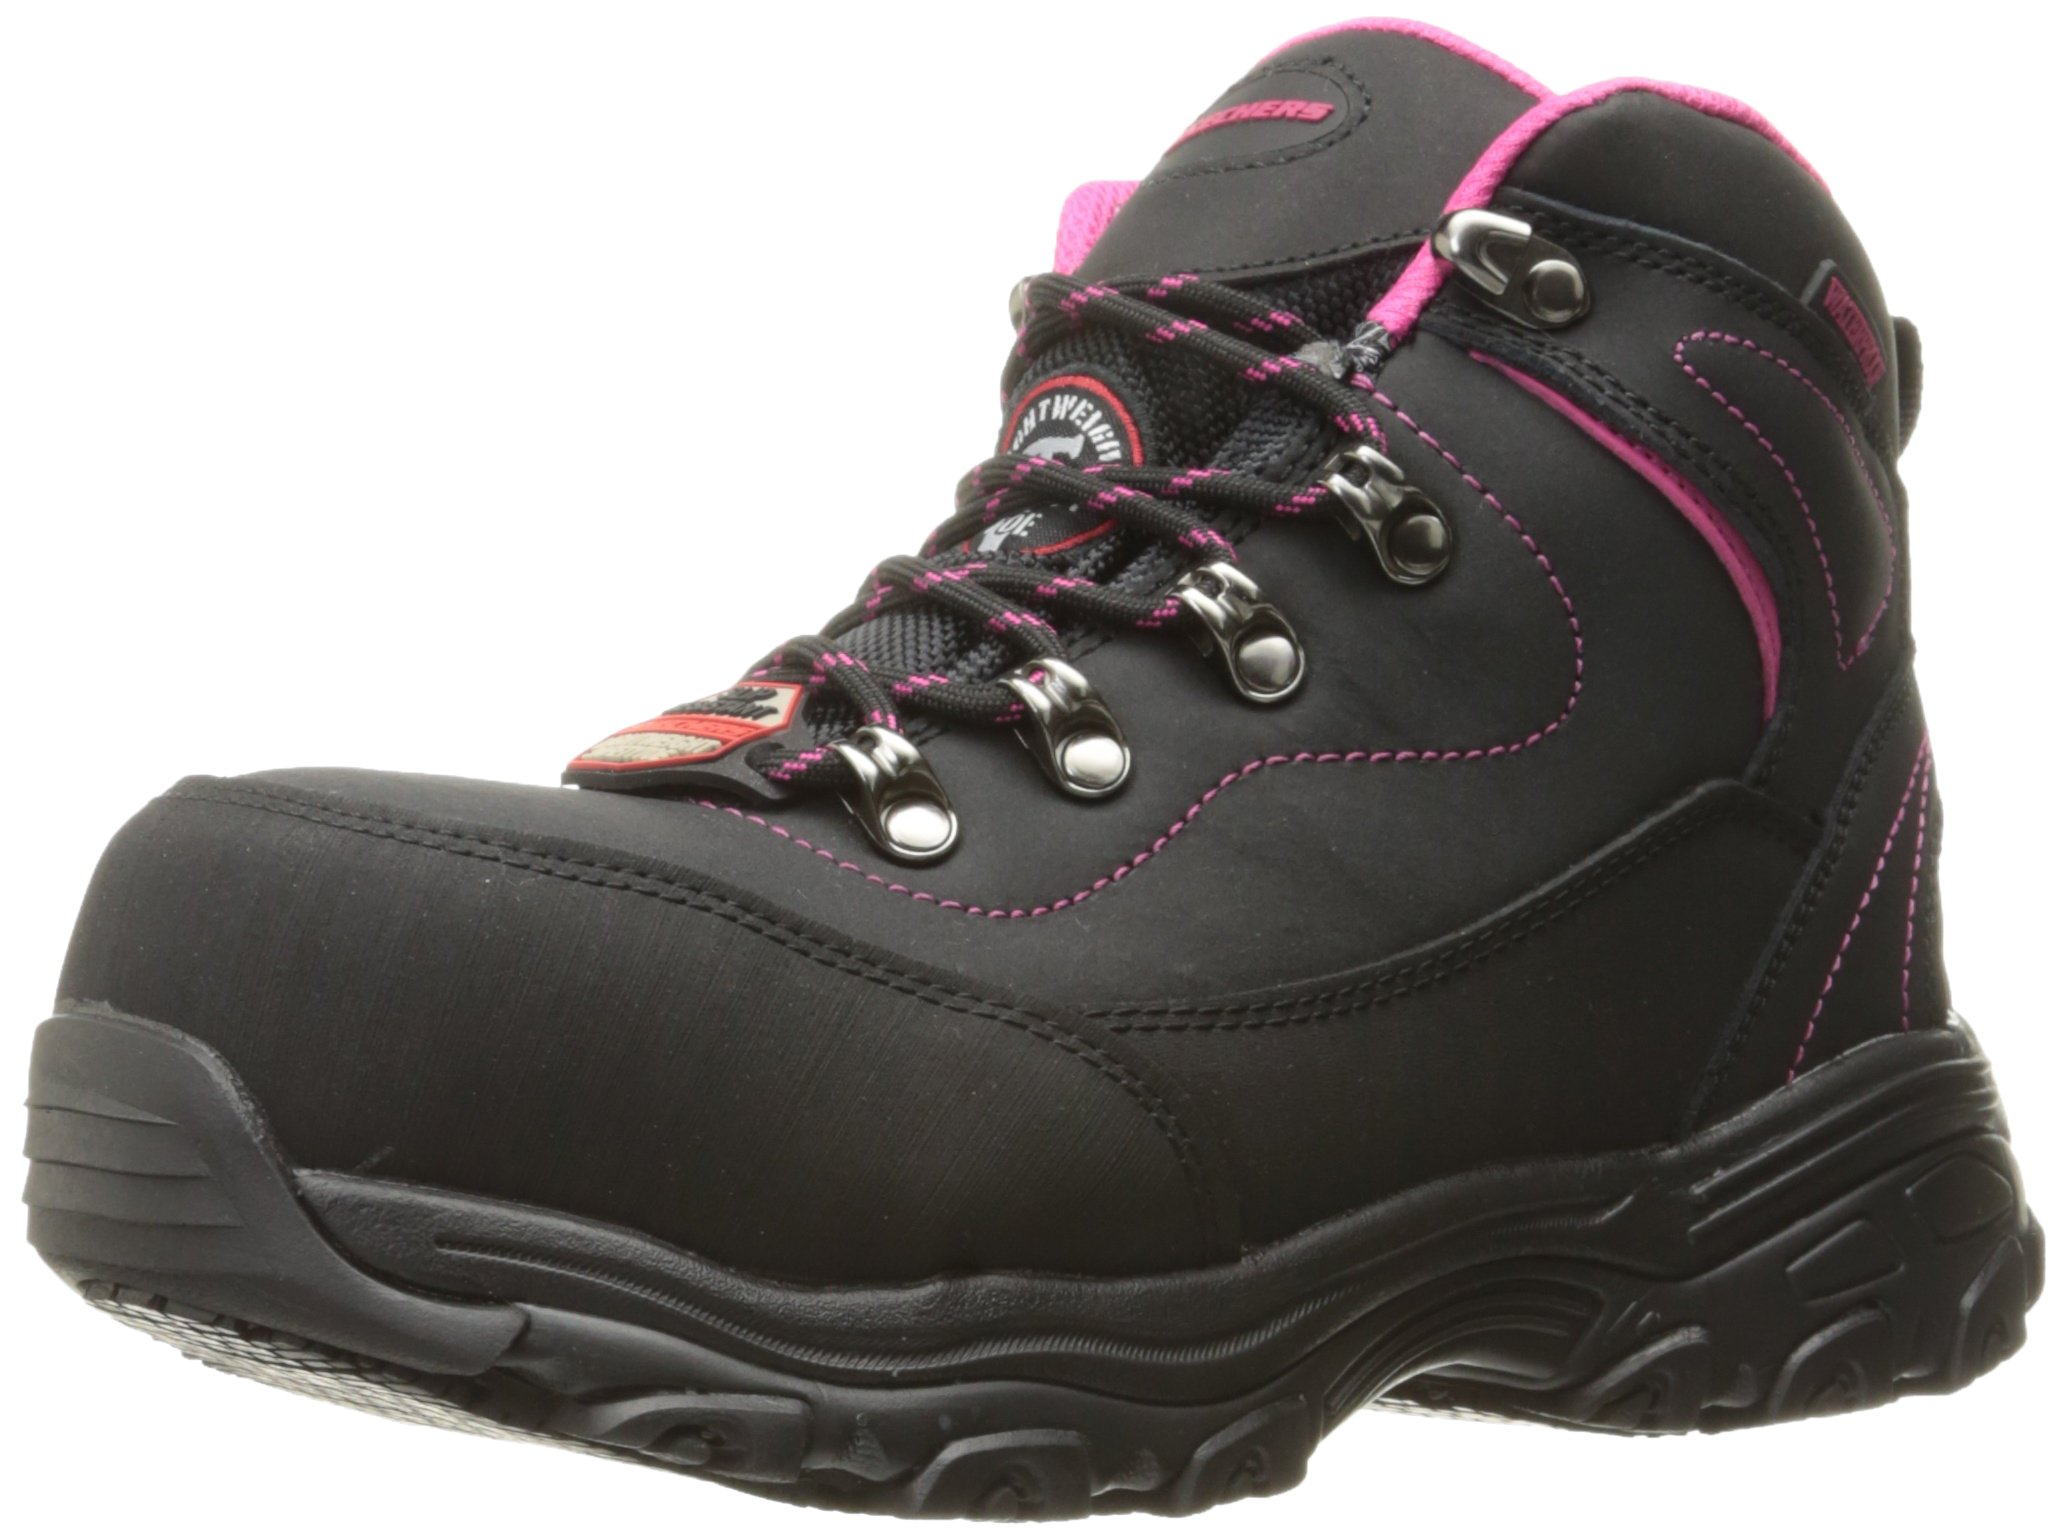 Skechers Women's D Lite Amasa Work Boot,Black,10 M US by Skechers